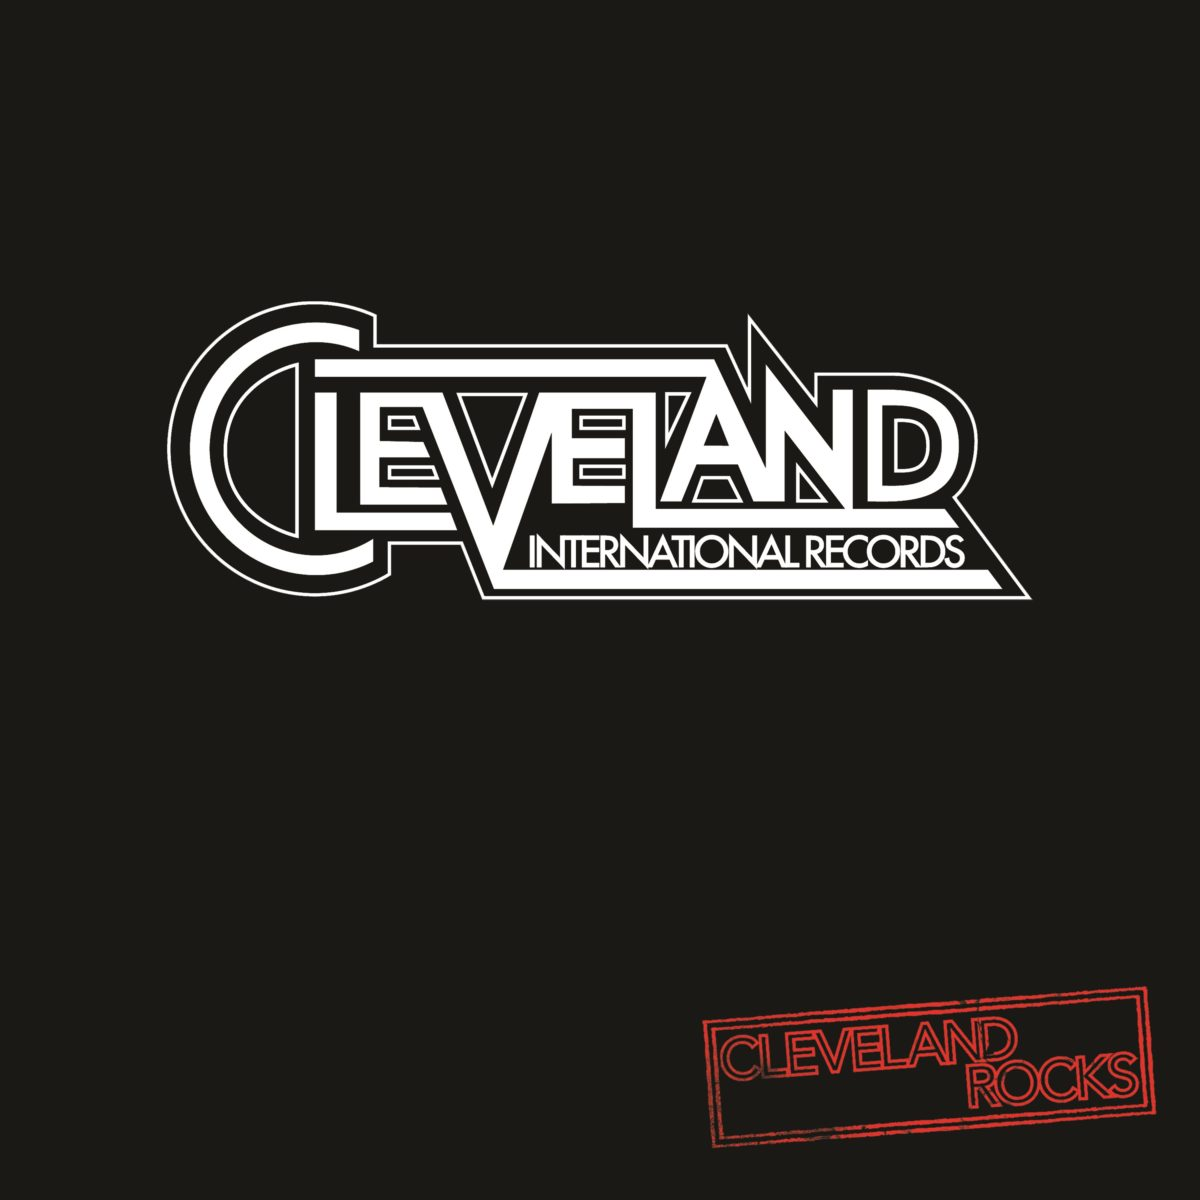 Cleveland International Records returns to the cities roots